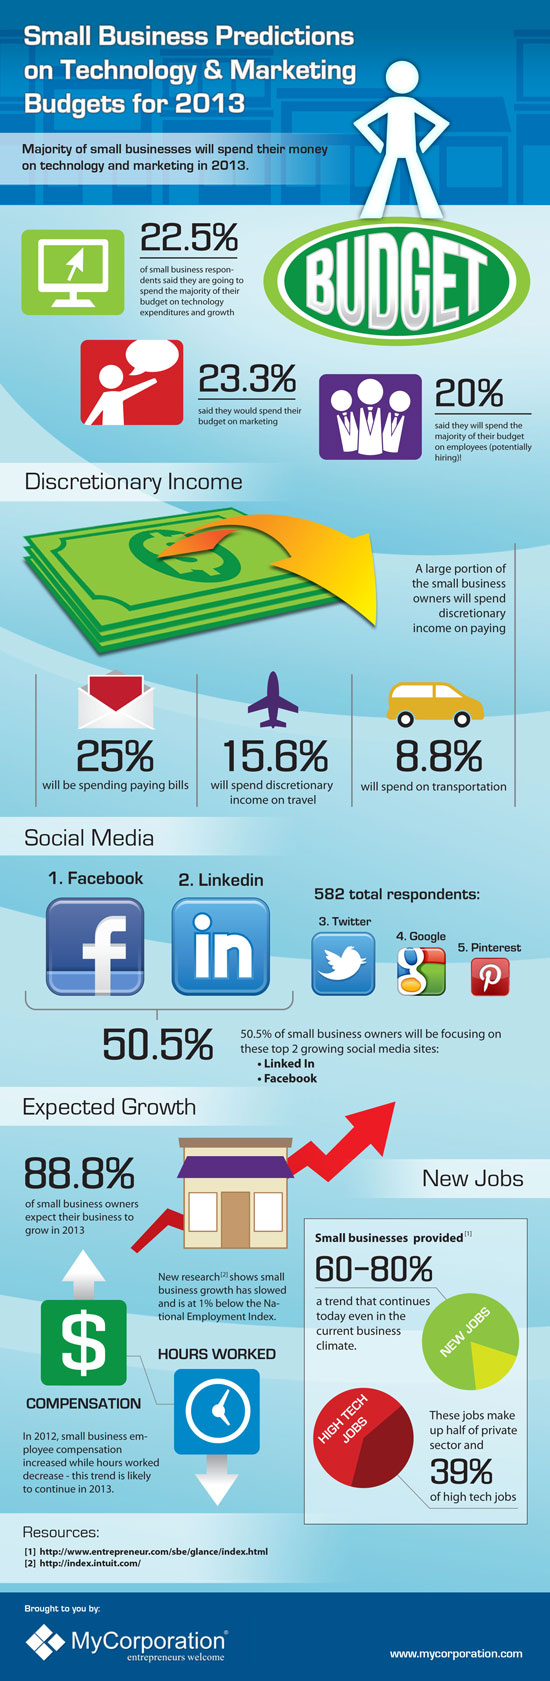 small business predictions and marketing budgets for 2013